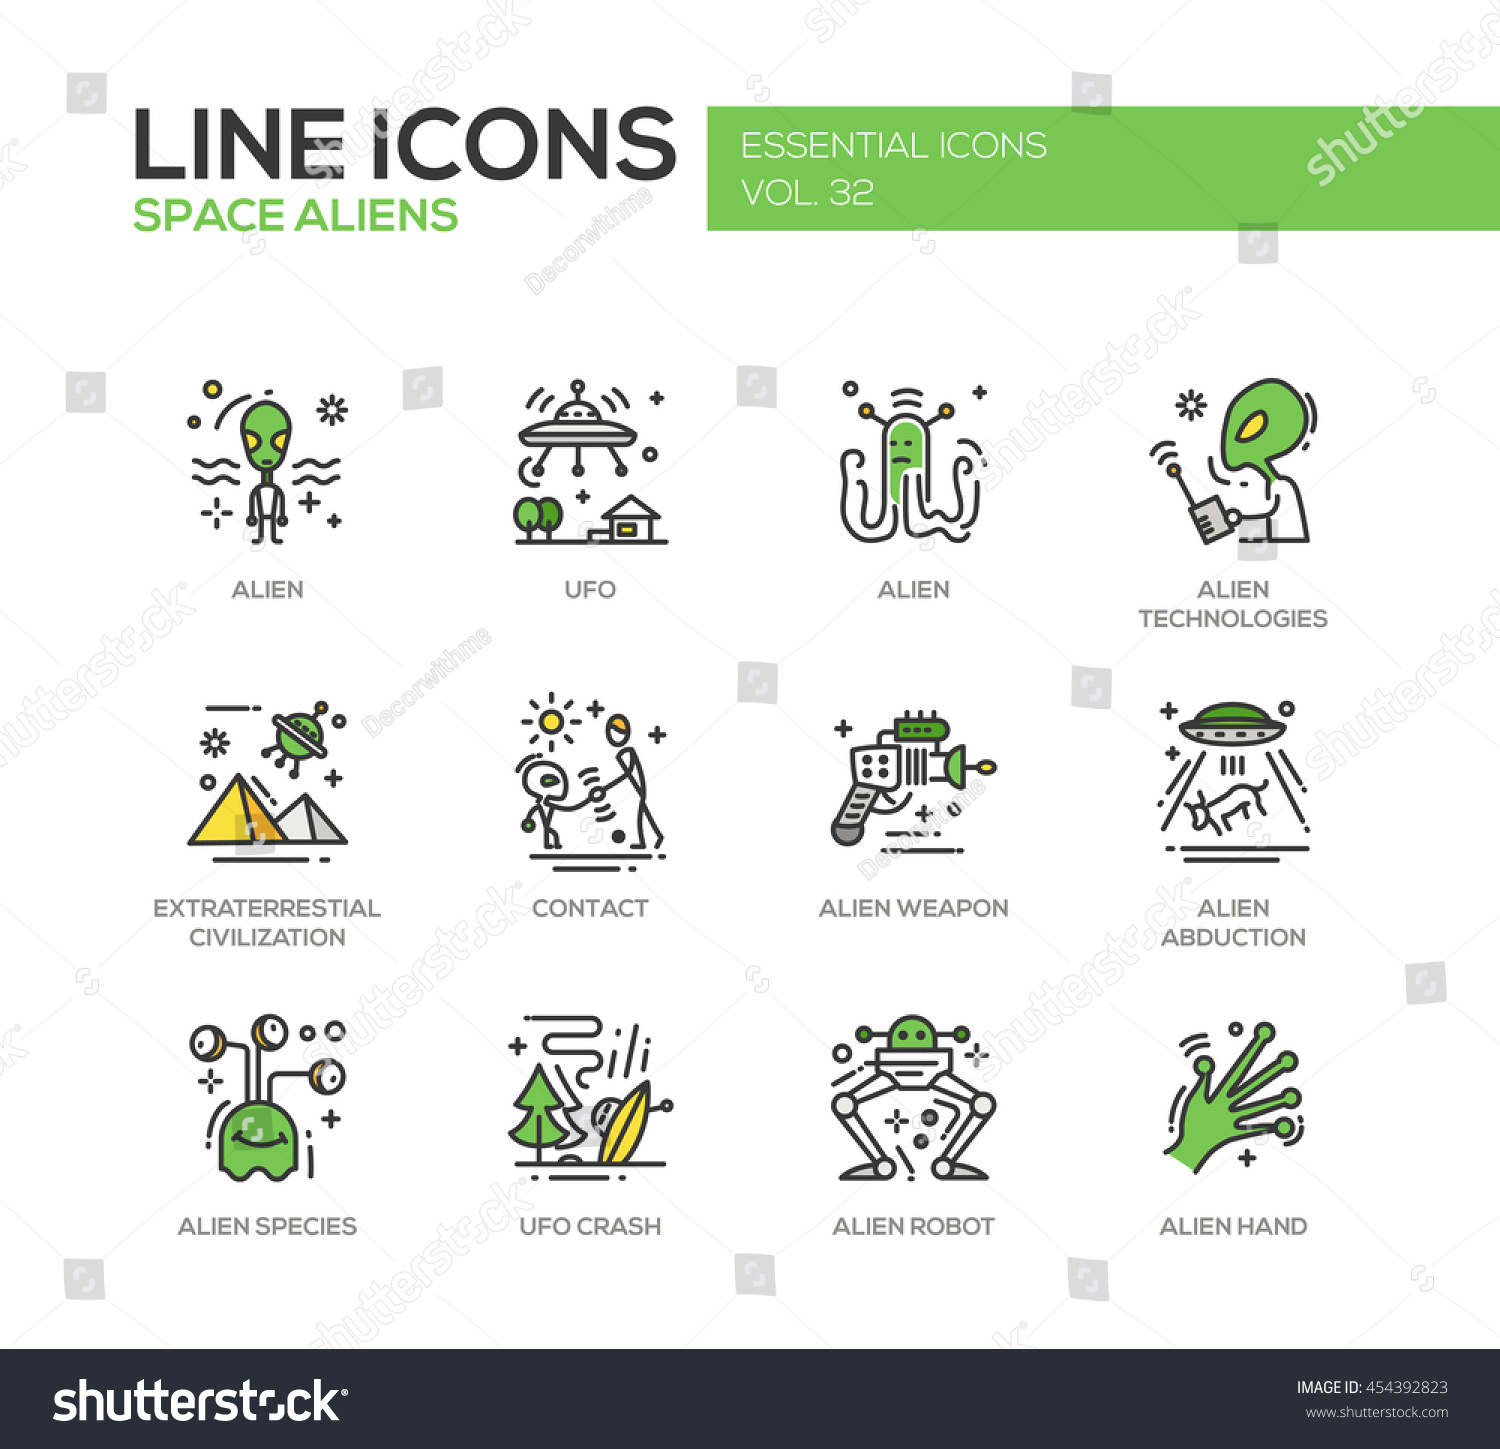 Space Aliens modern vector line design icons and pictograms set UFO technologies extraterrestial civilization contact weapon alien abduction species crash robot hand